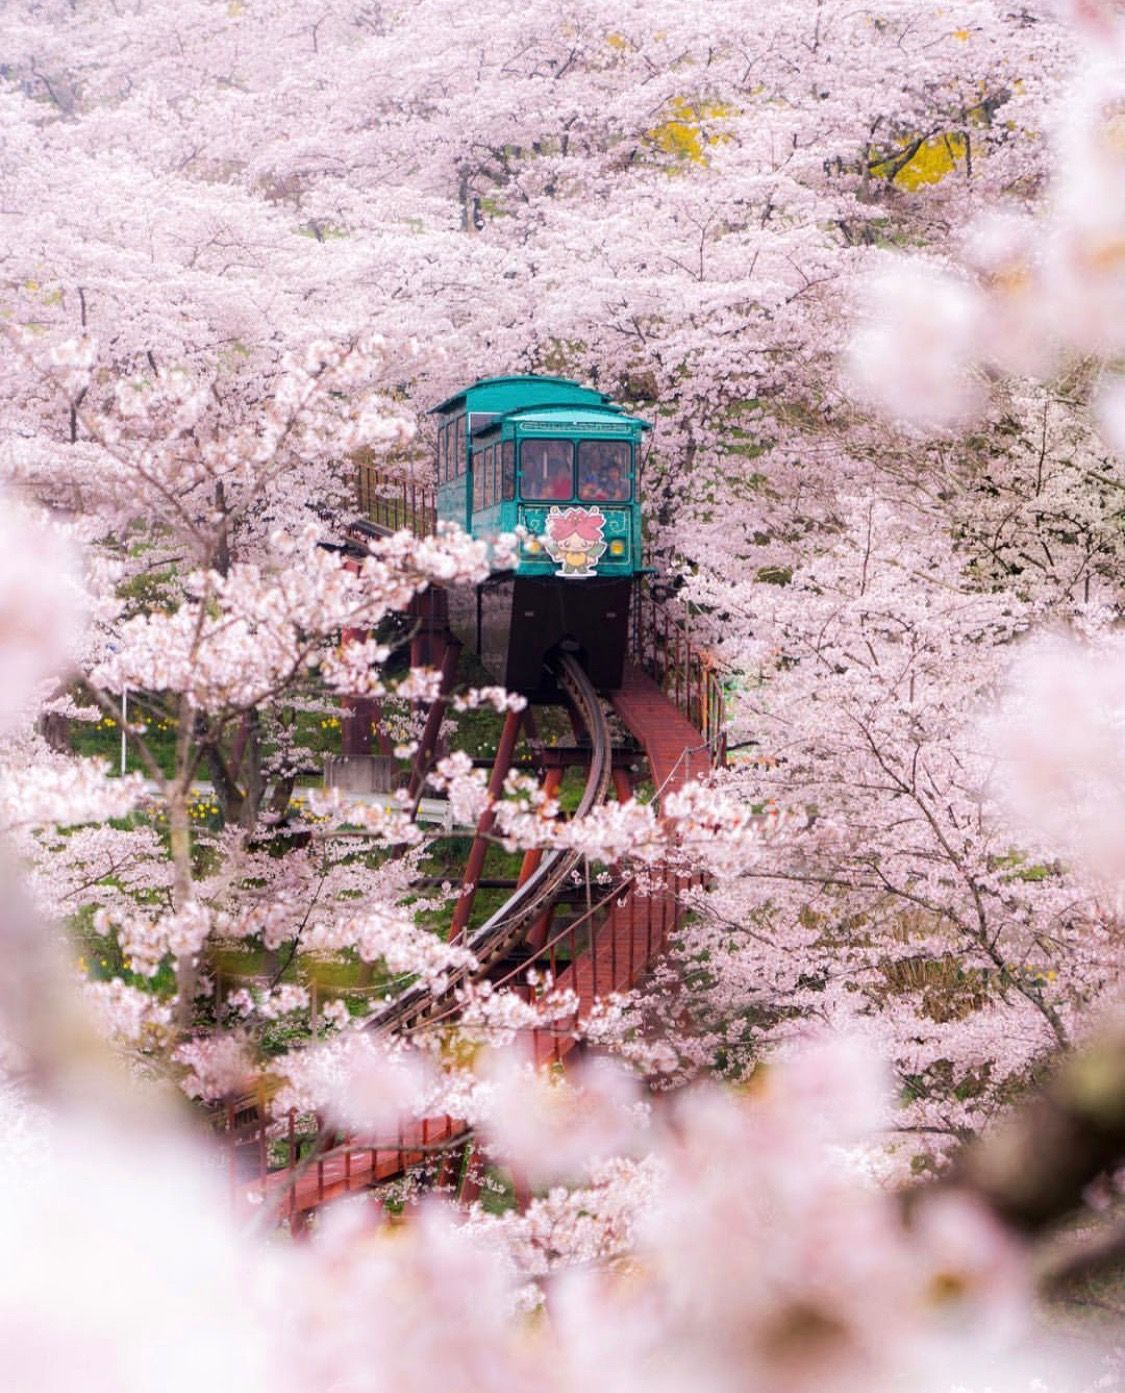 Pin By Britta On Photographyhd Cherry Blossom Japan Cherry Blossom Japan